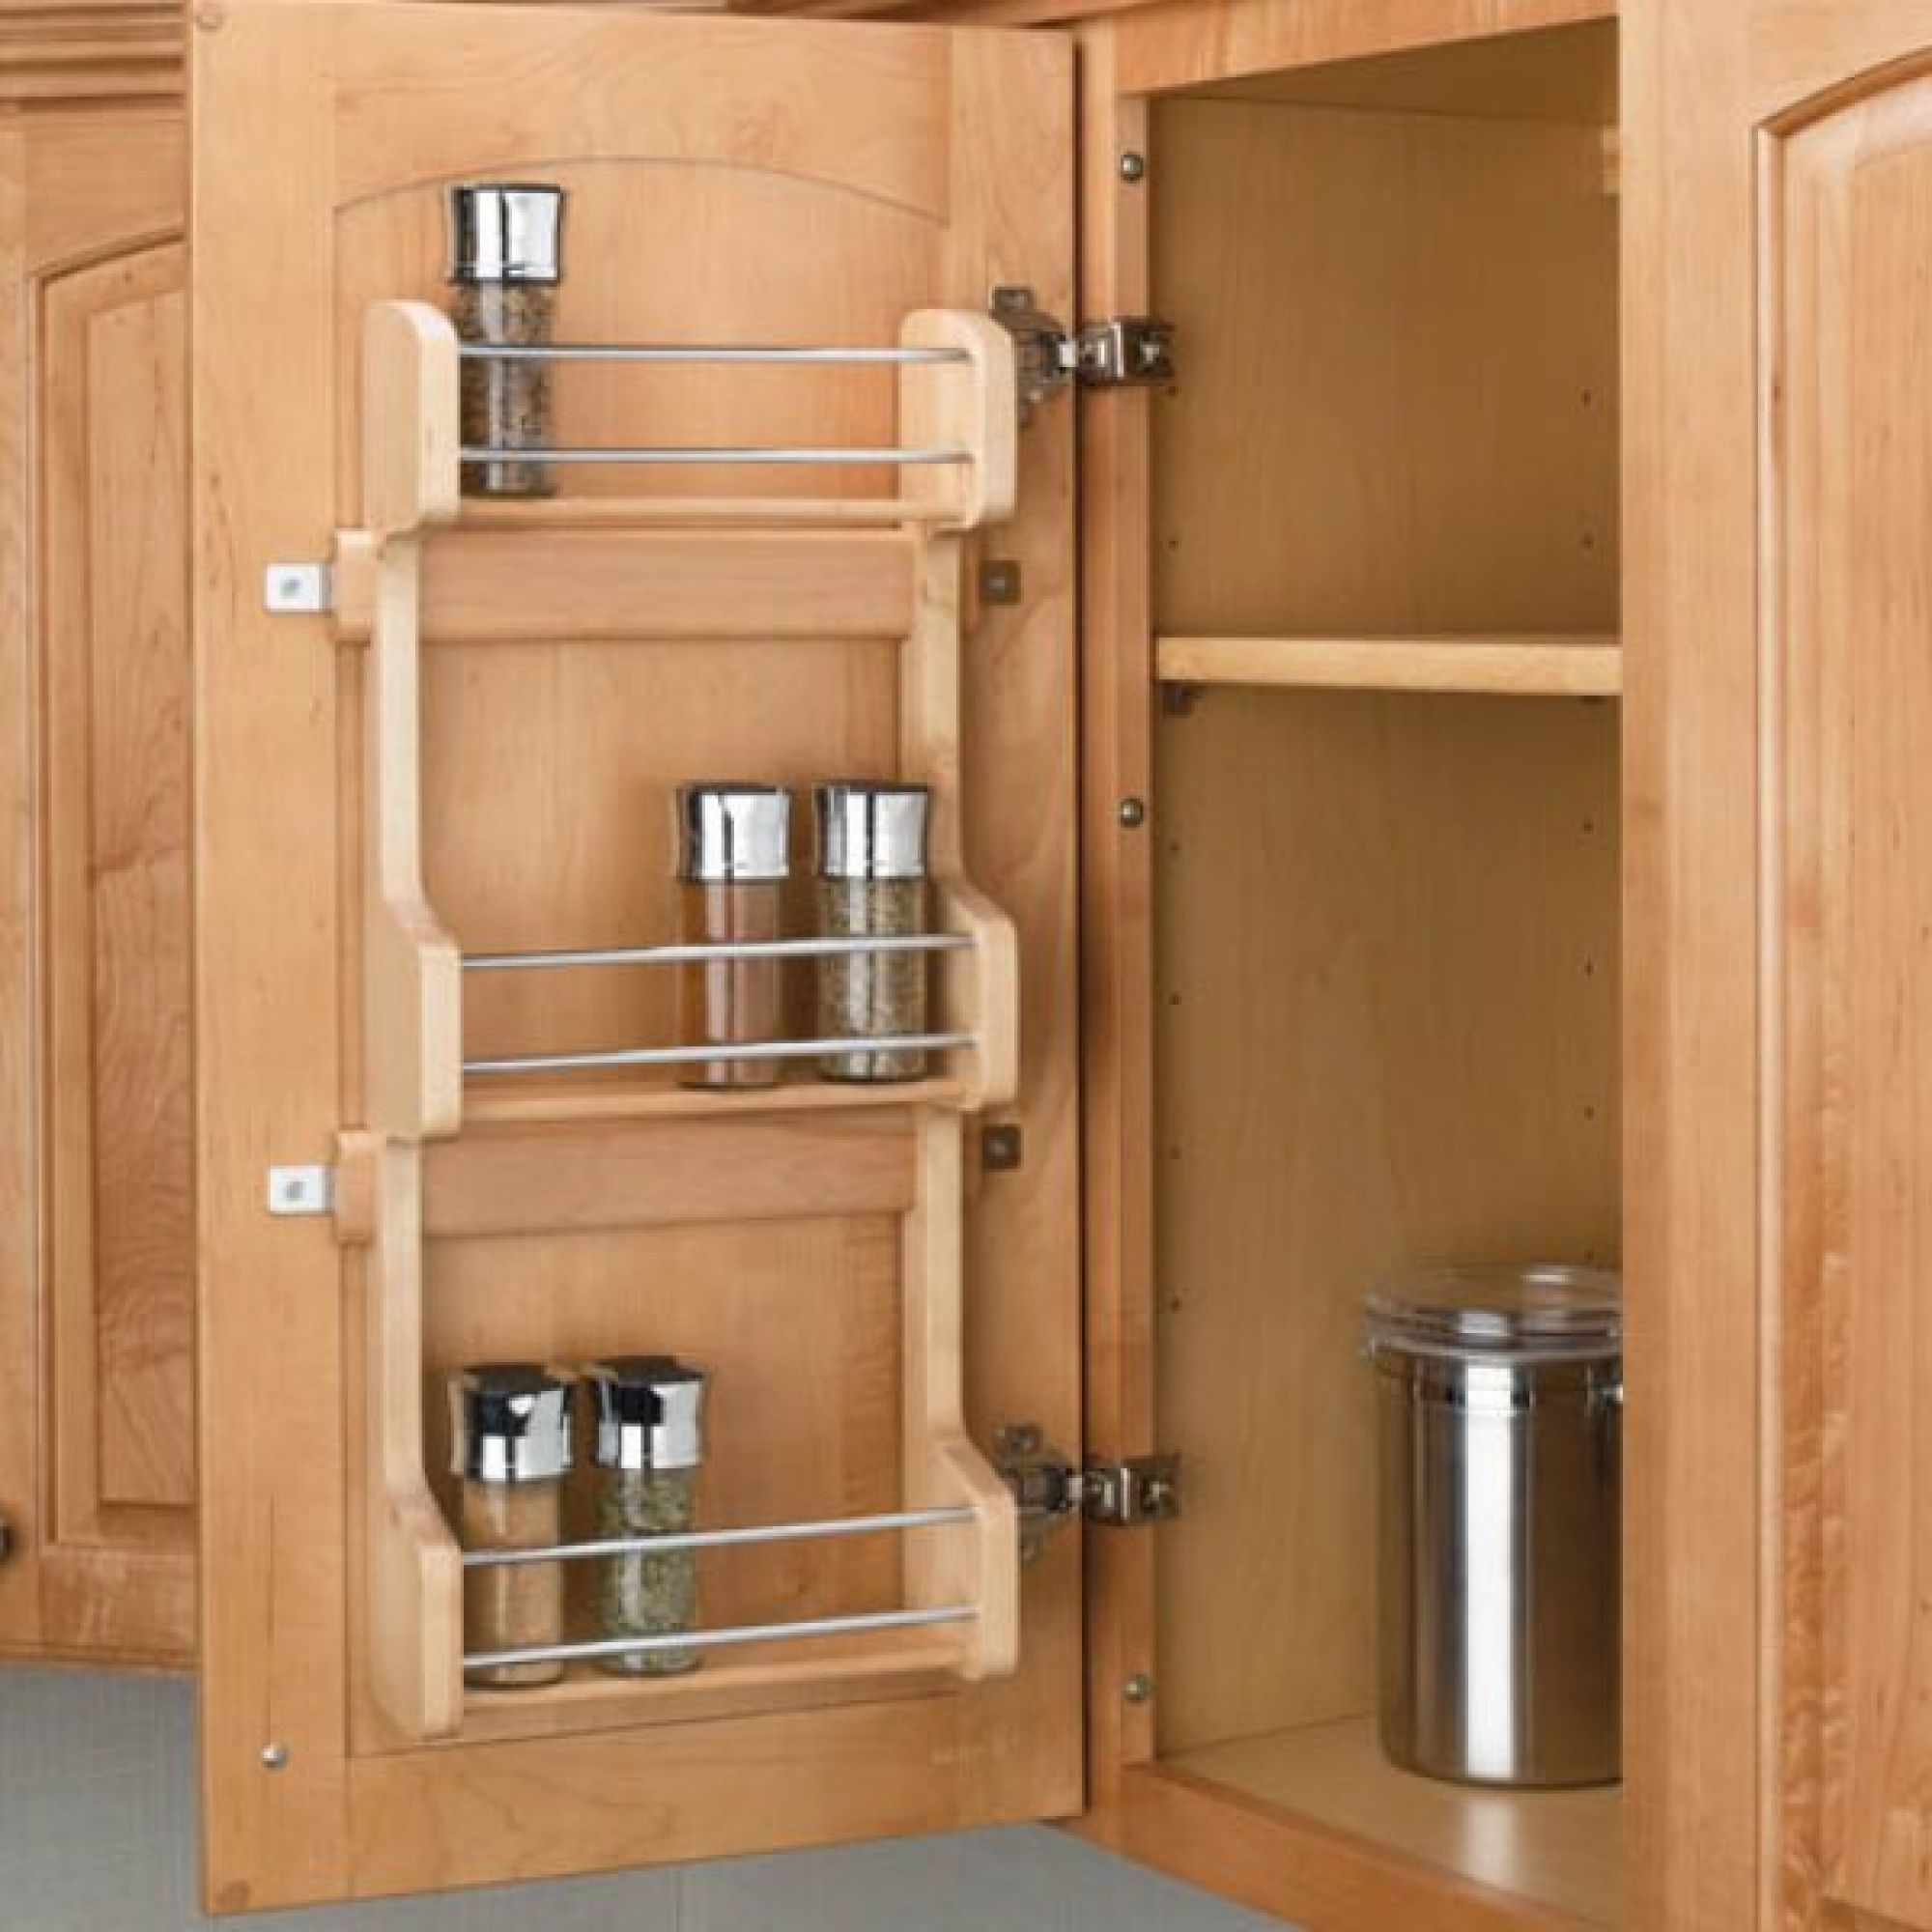 Spice Organizer For Cabinet Door Best Home Furniture Decoration With Cupboard Organizers (Image 22 of 25)